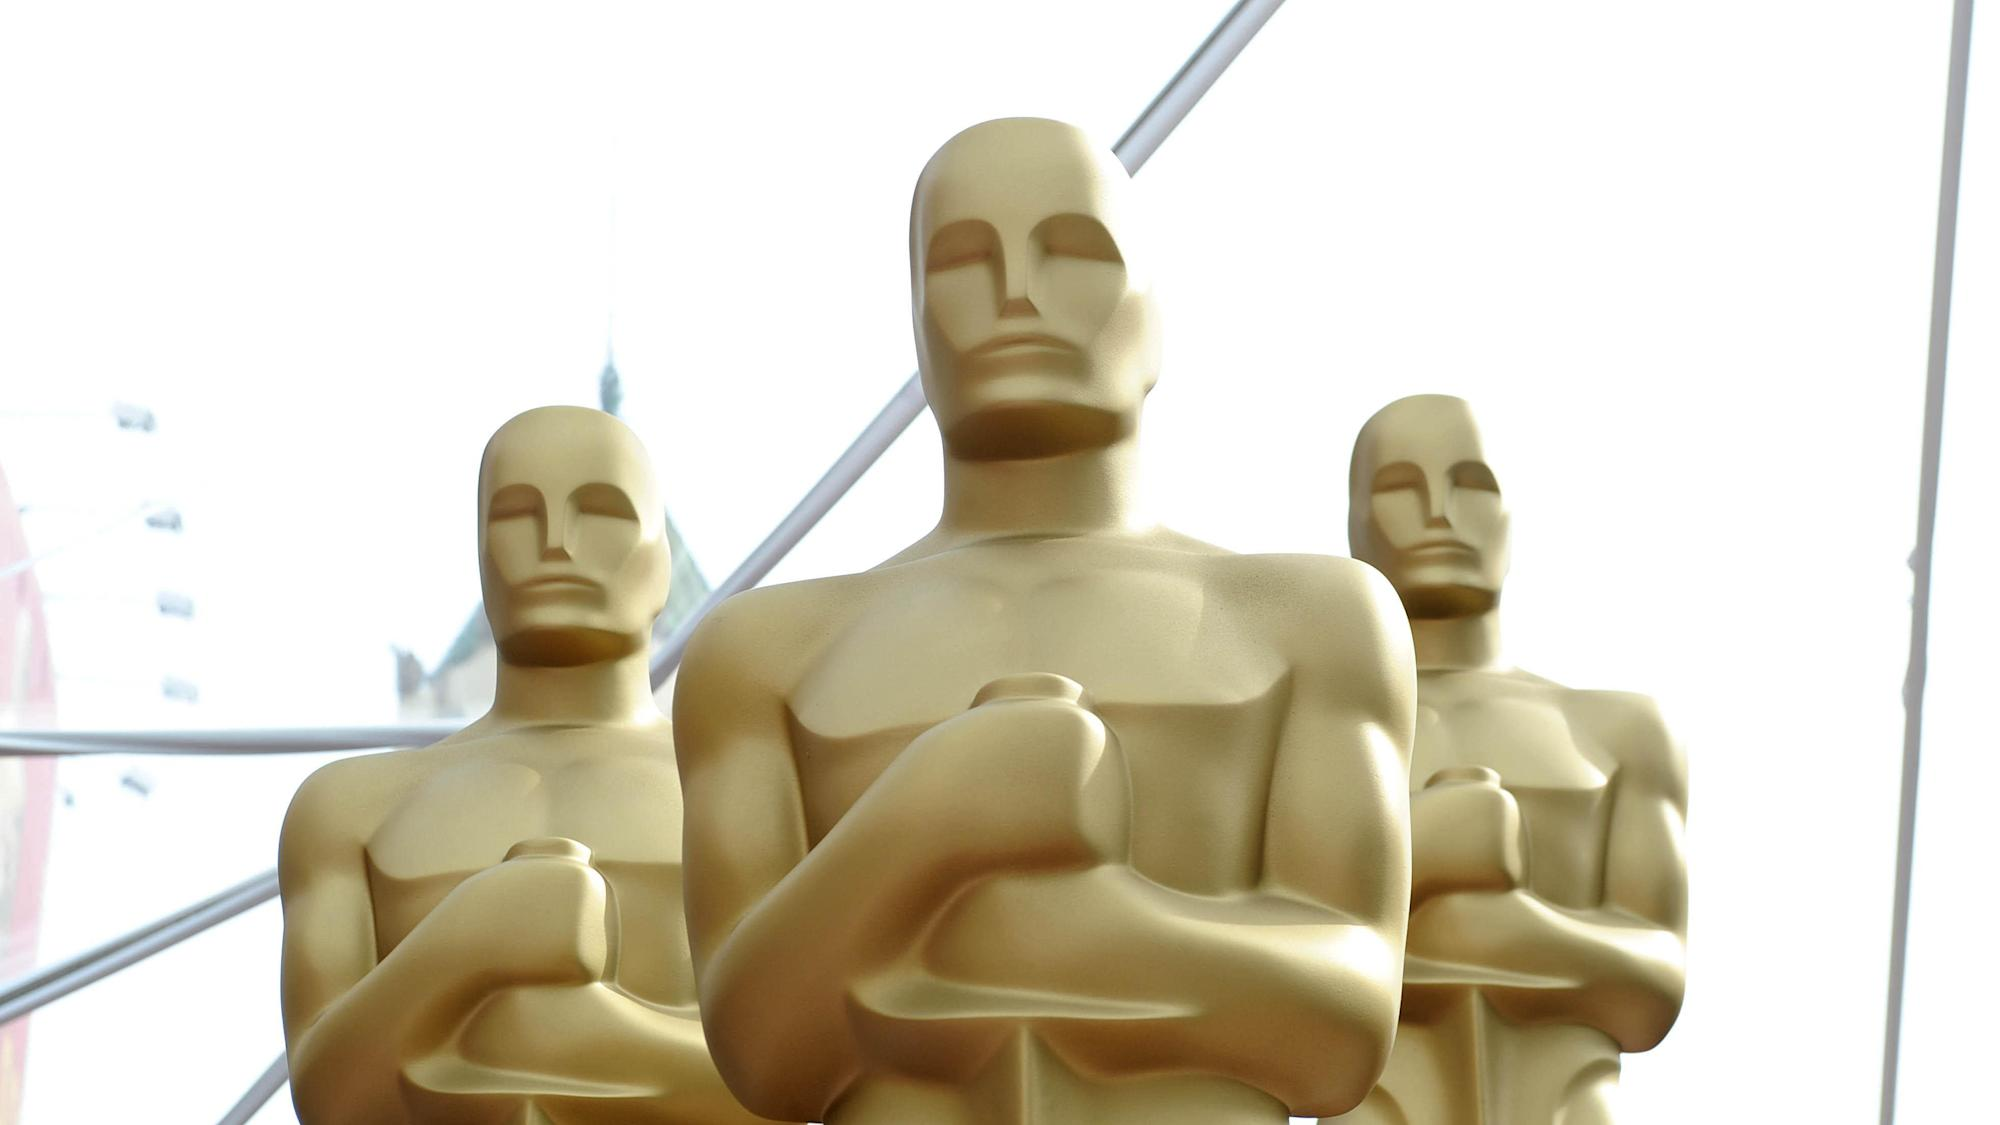 Milestones reached and records broken at this year's Oscars